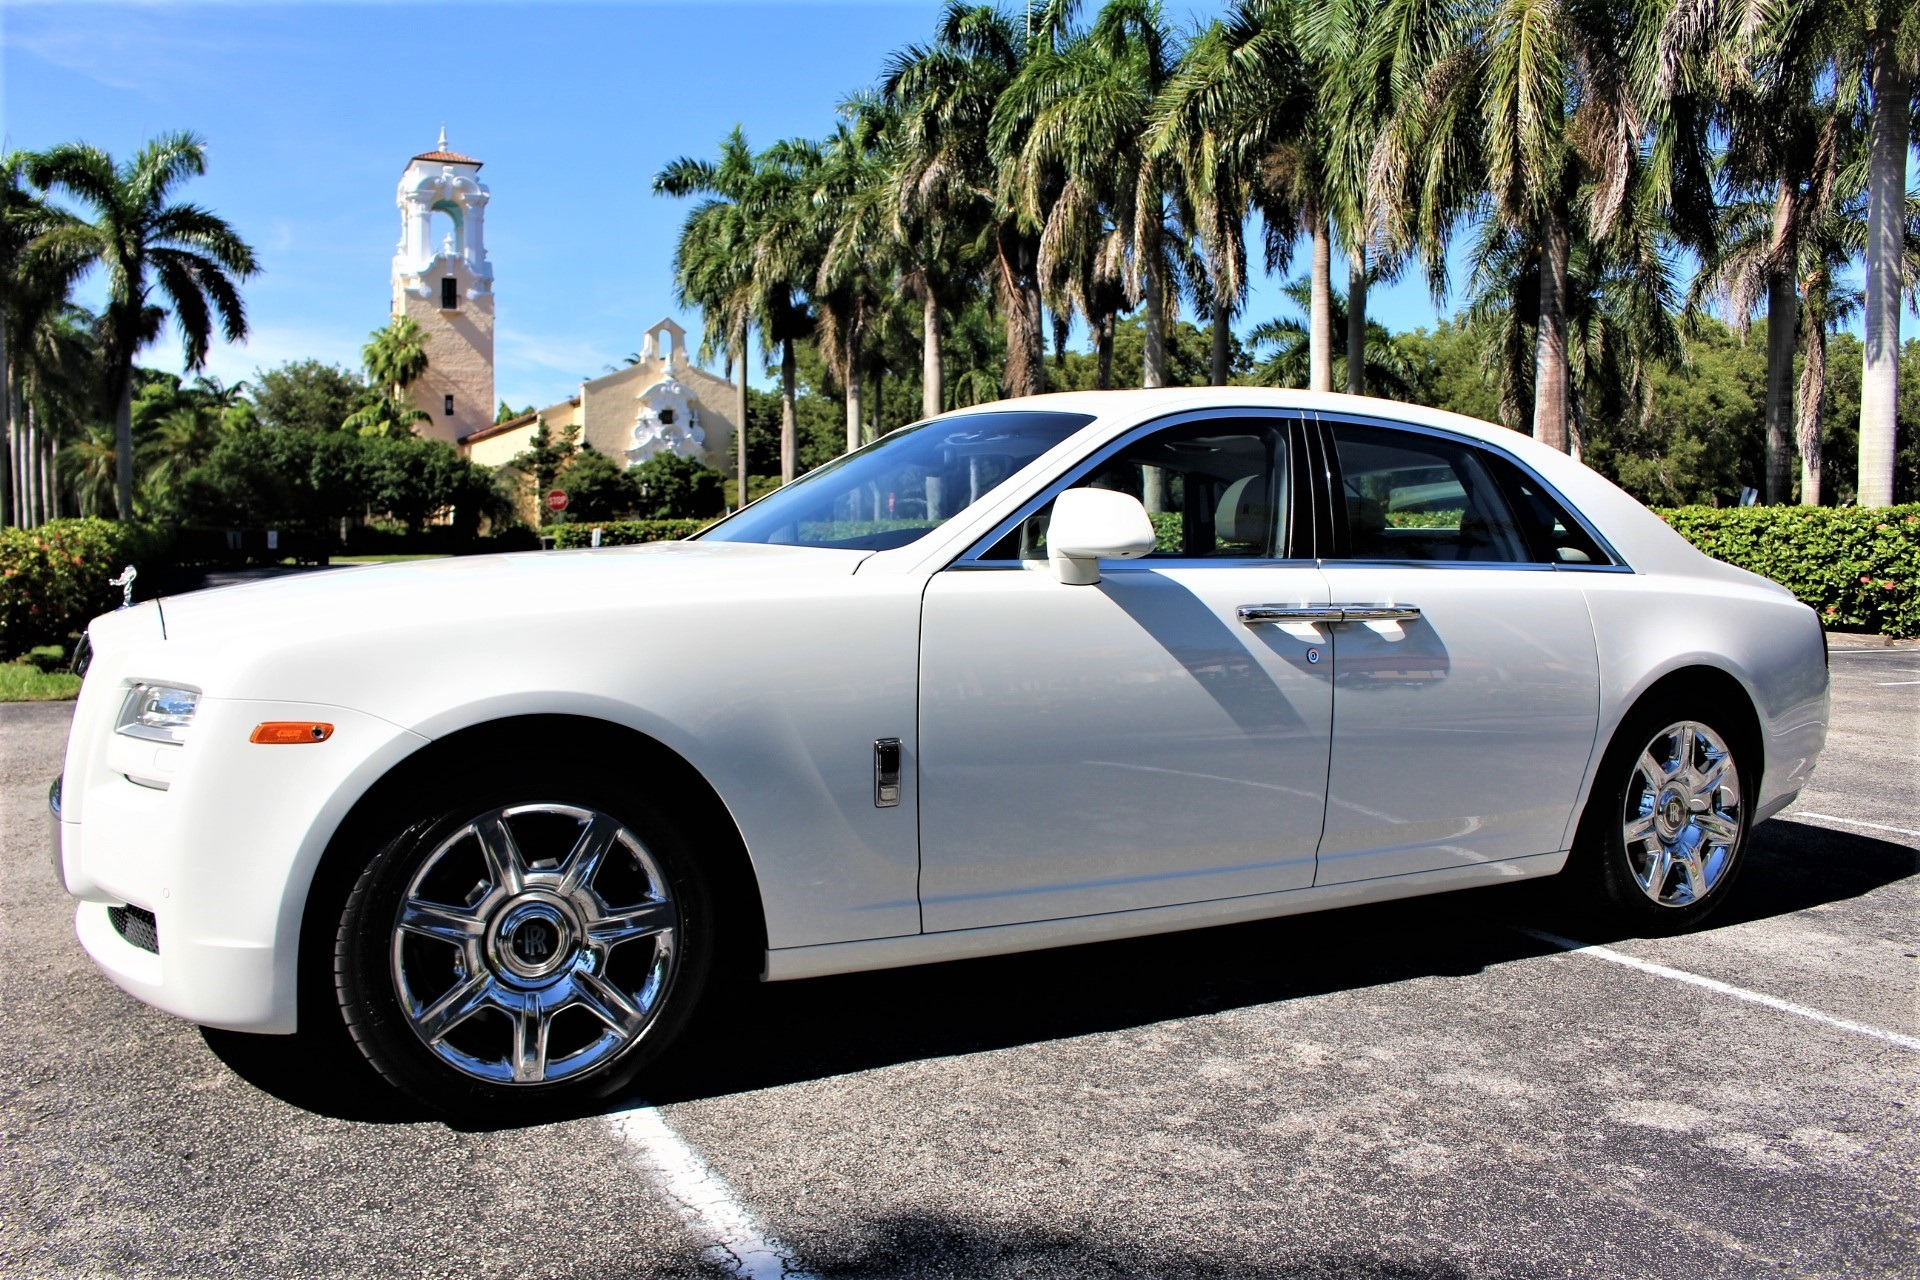 Used 2012 Rolls-Royce Ghost for sale $119,850 at The Gables Sports Cars in Miami FL 33146 3